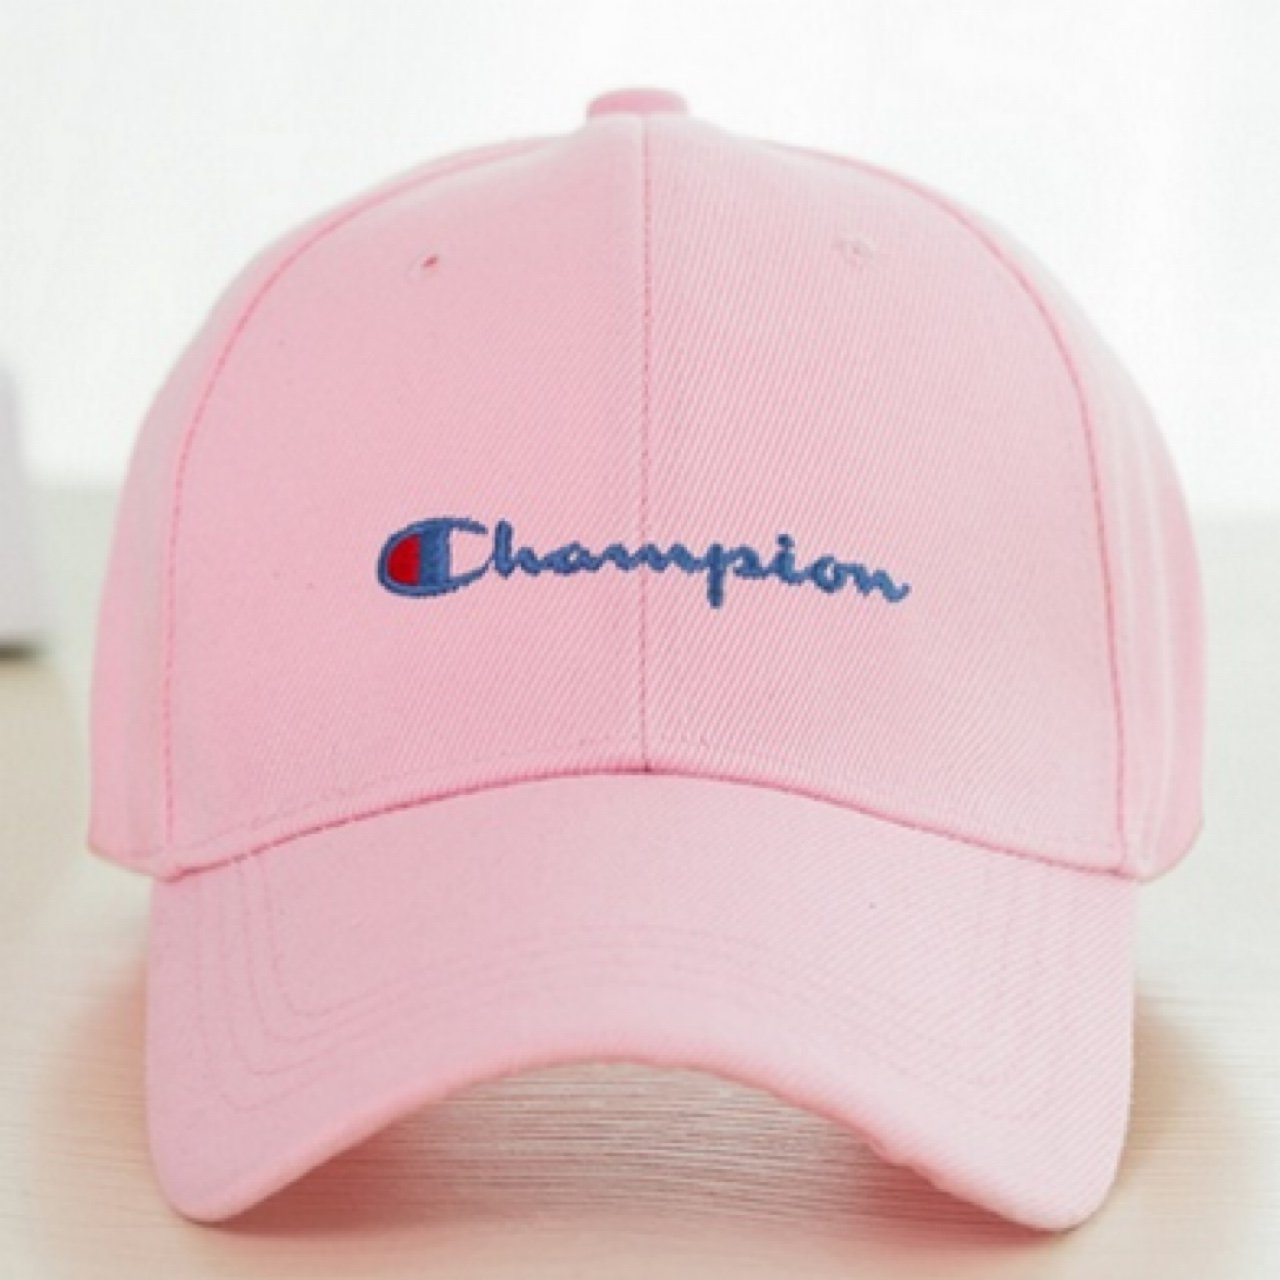 fa932b5bc05 LAST ONE!!! 🔥 PINK CHAMPION HAT - Unisex Champion caps in - Depop